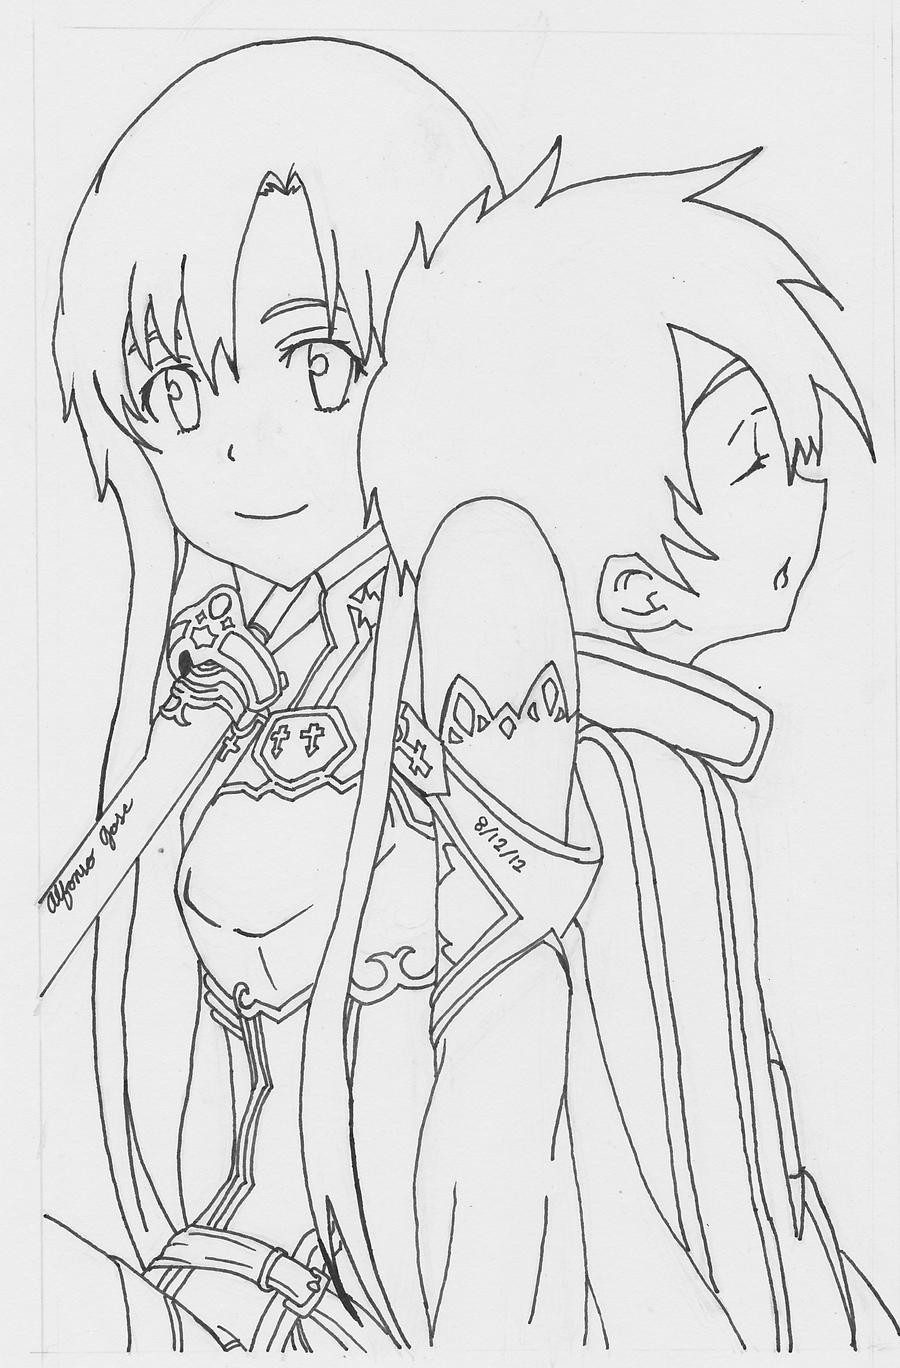 anime girl with swords coloring pages | Sword Art Online lineart by ajscorching on DeviantArt